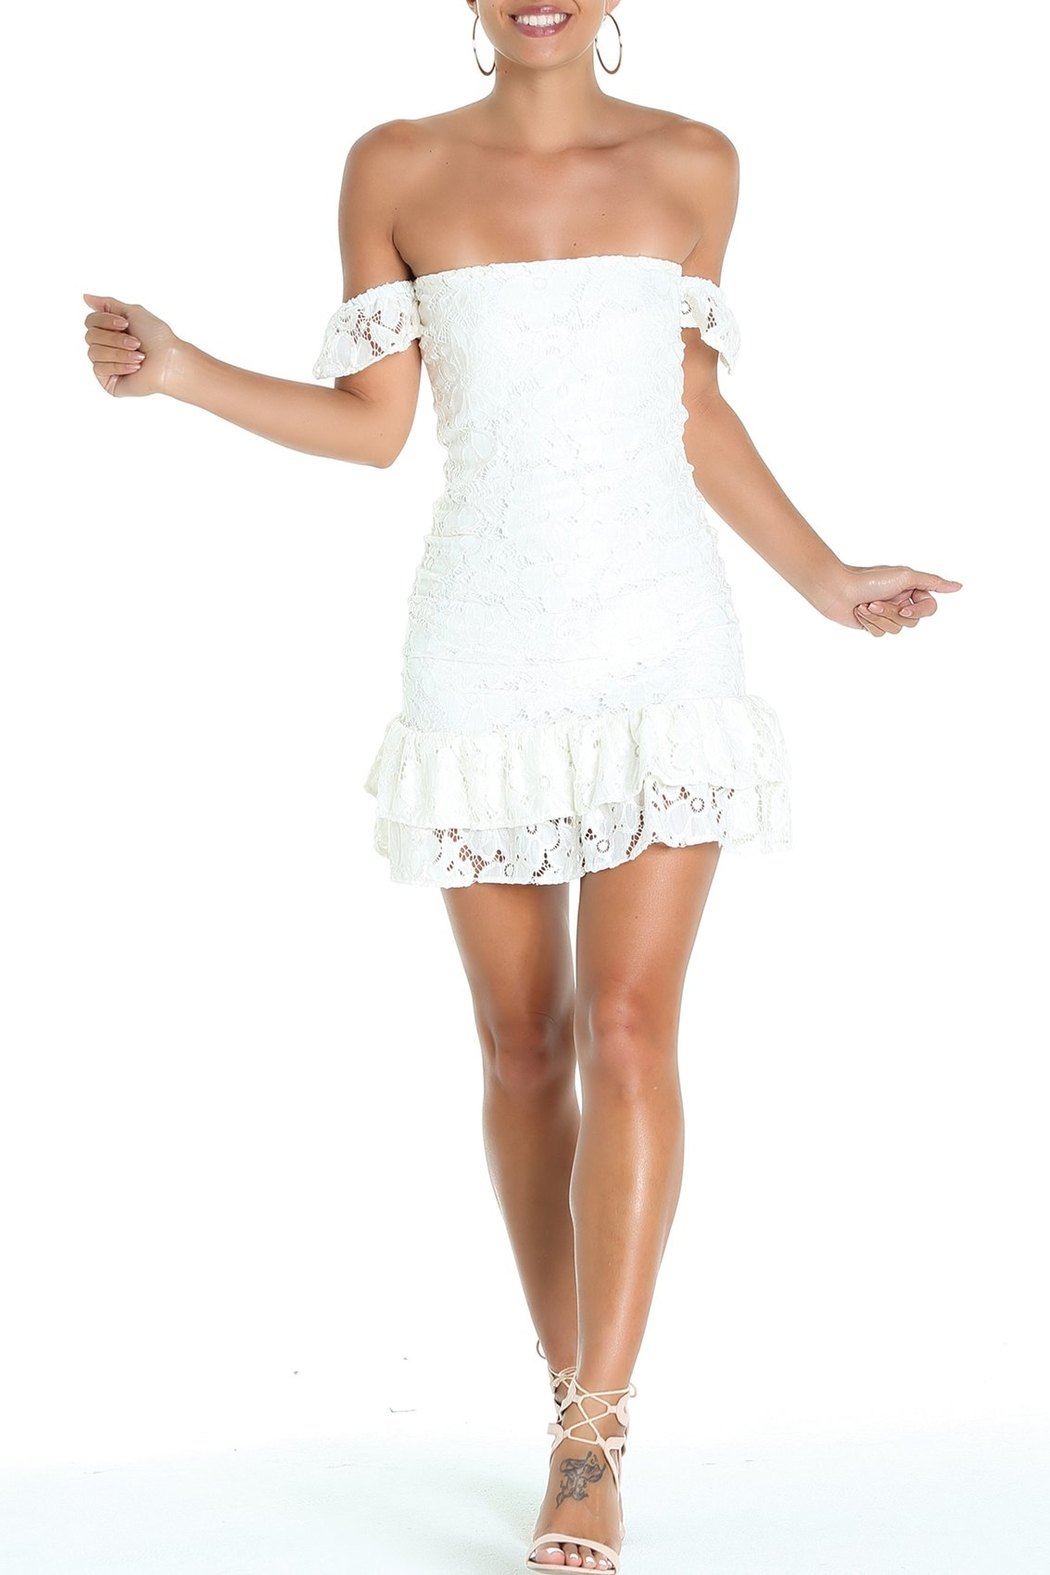 Lucy Love MAIN ATTRACTION DRESS - Main Image